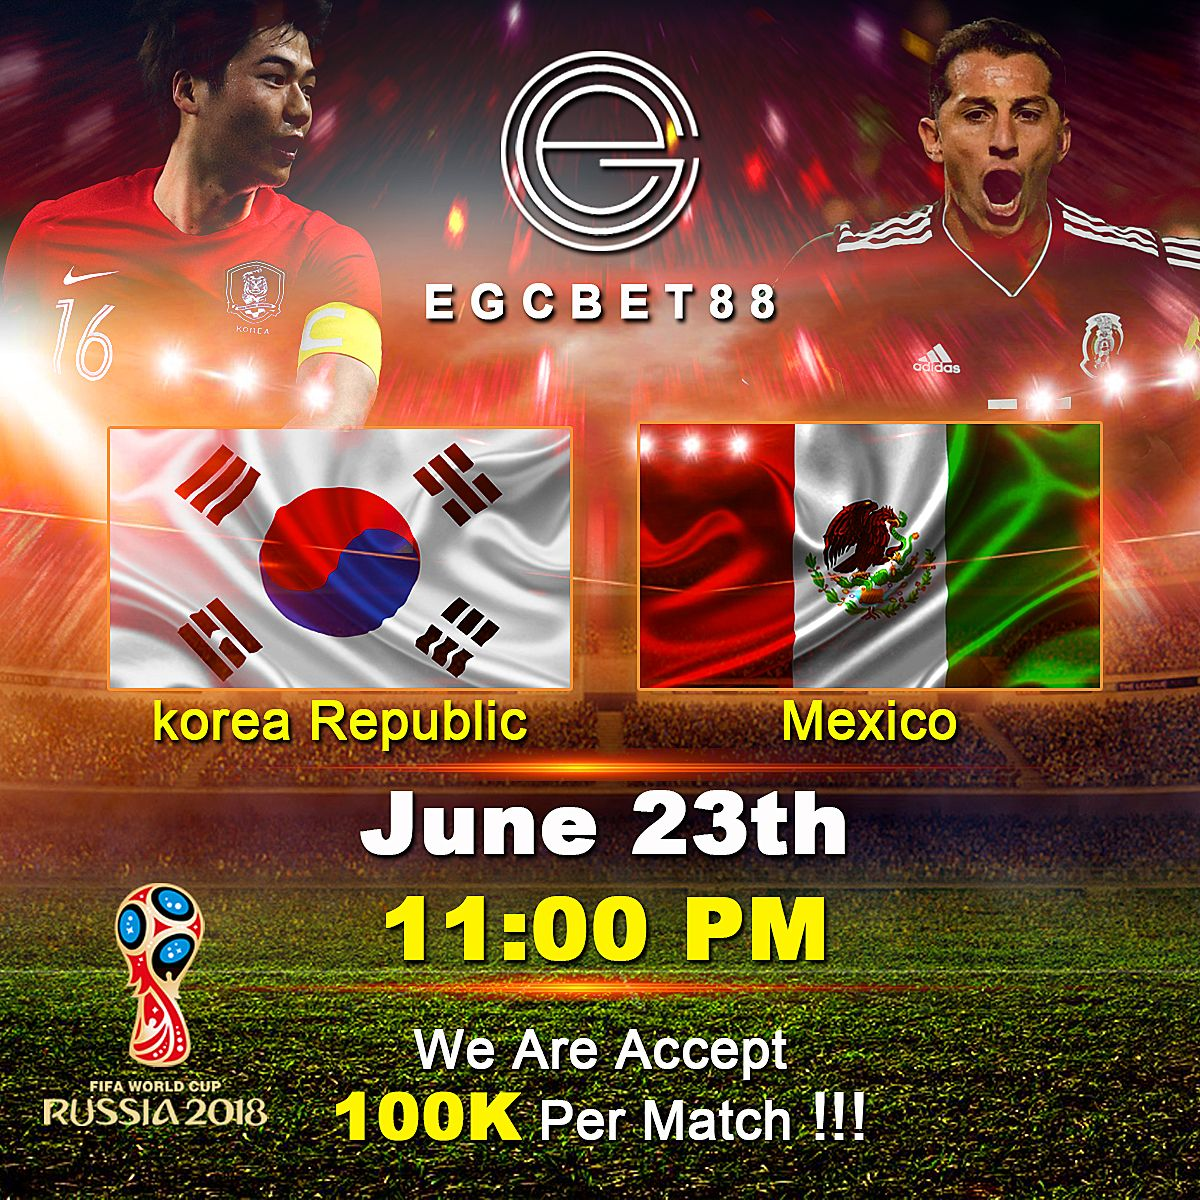 New Best Company In Malaysia Trusted Online Entertainment Platform In Malaysia Hot Attractive P World Cup Match Online Casino Casino Slot Games